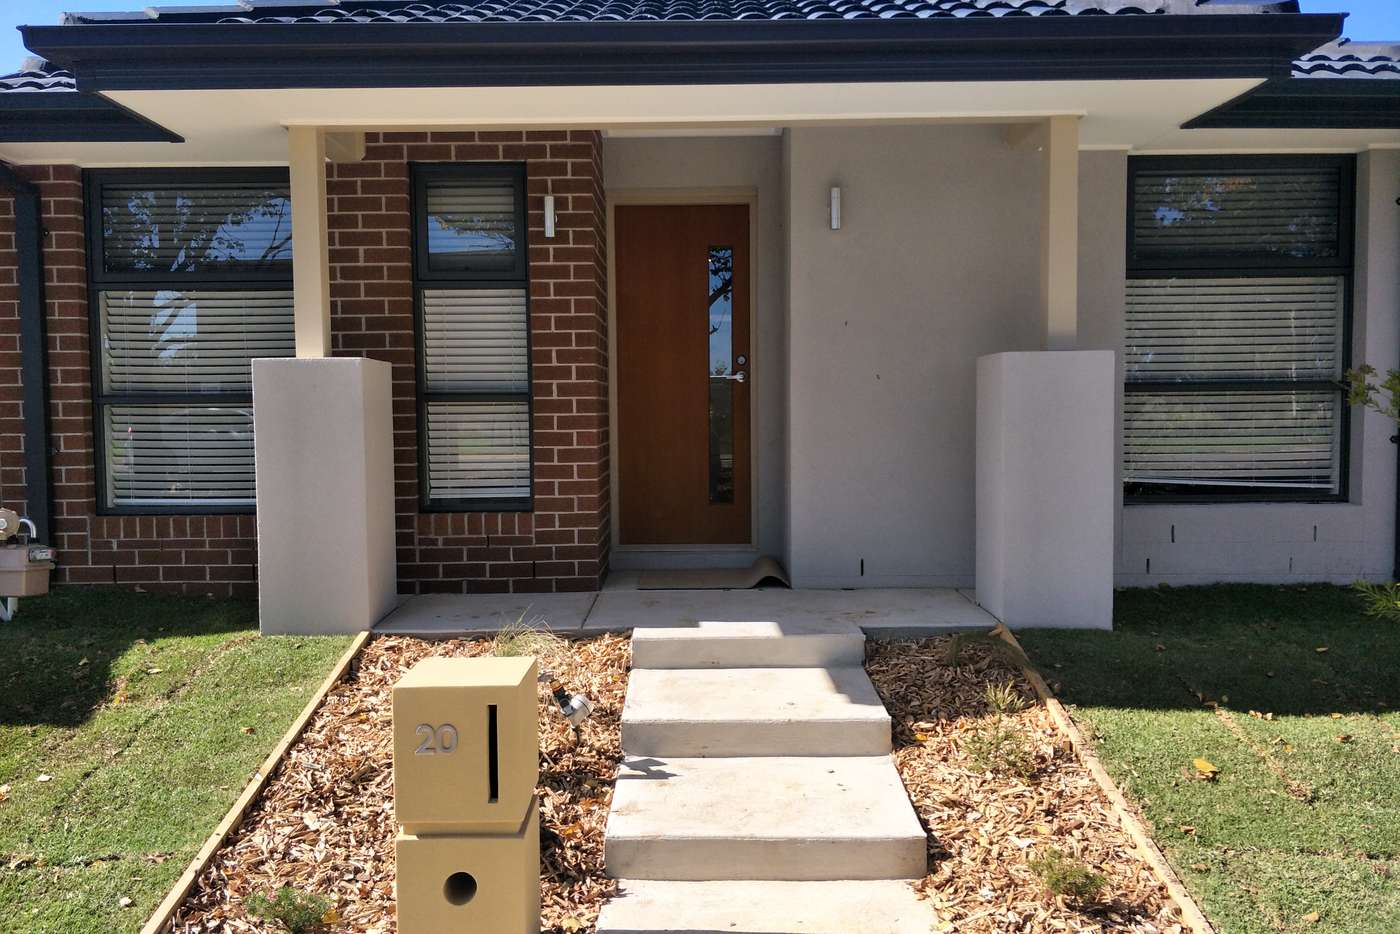 Main view of Homely house listing, 20 Dutchelm Avenue, Werribee VIC 3030